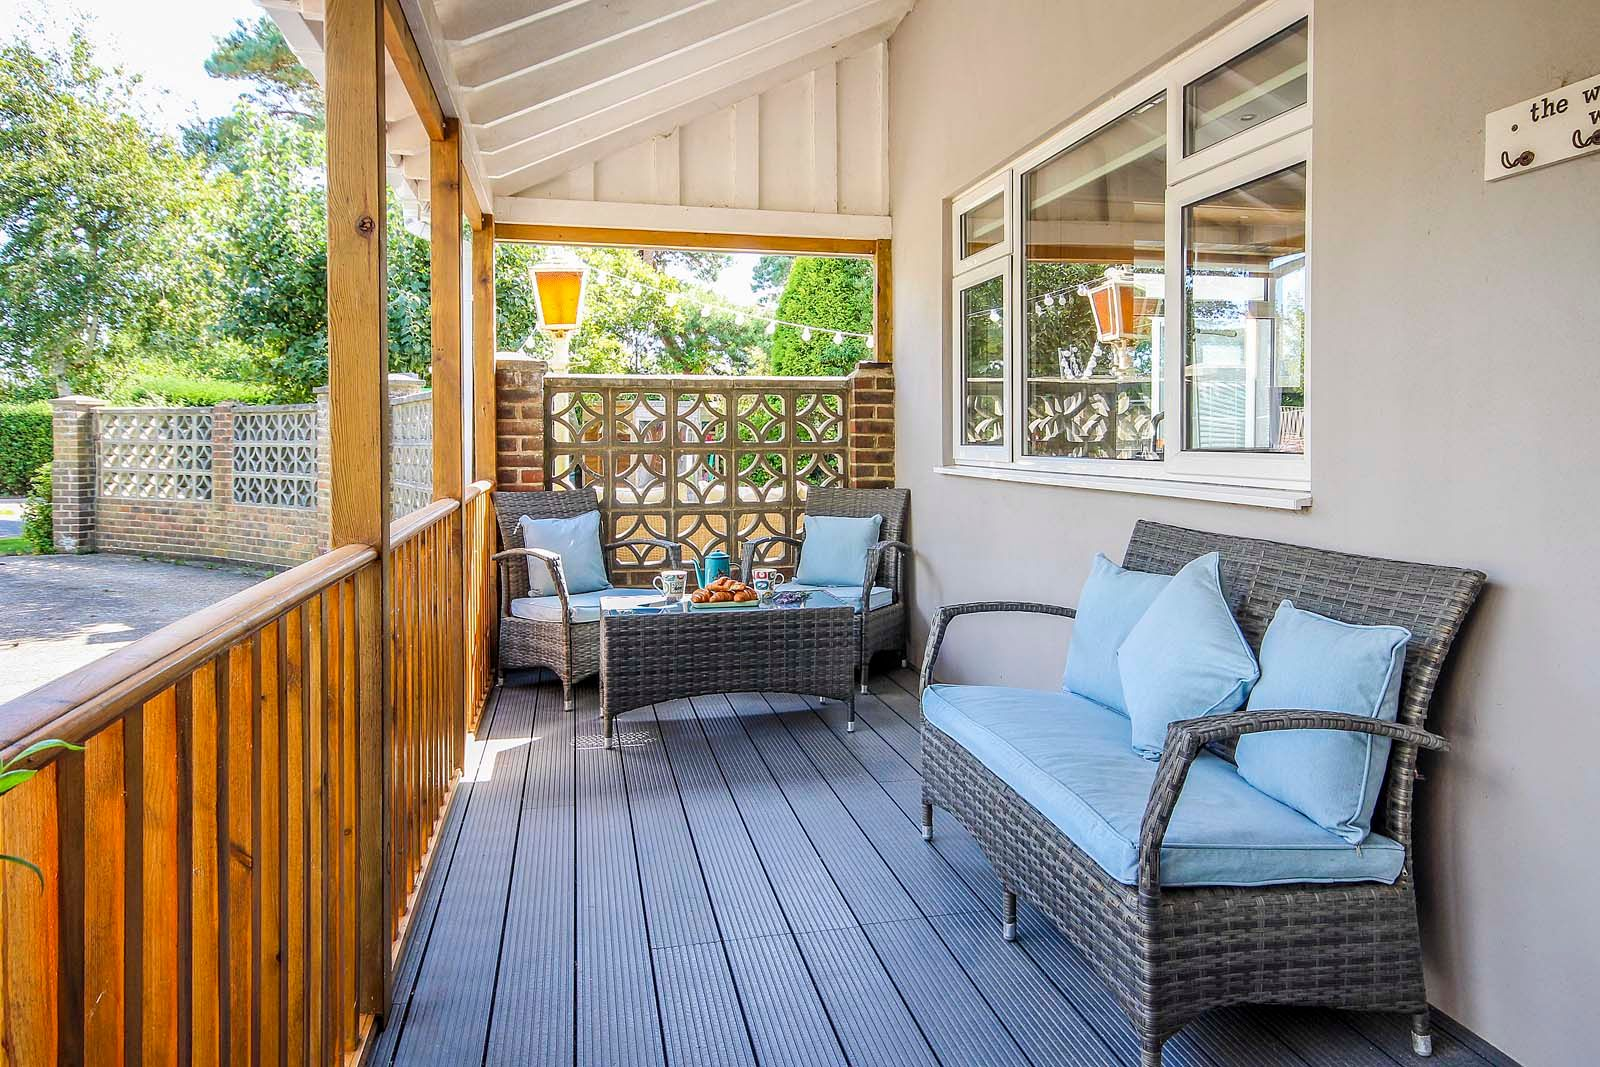 4 bed House for sale in Rustington - Verandah (Property Image 2)